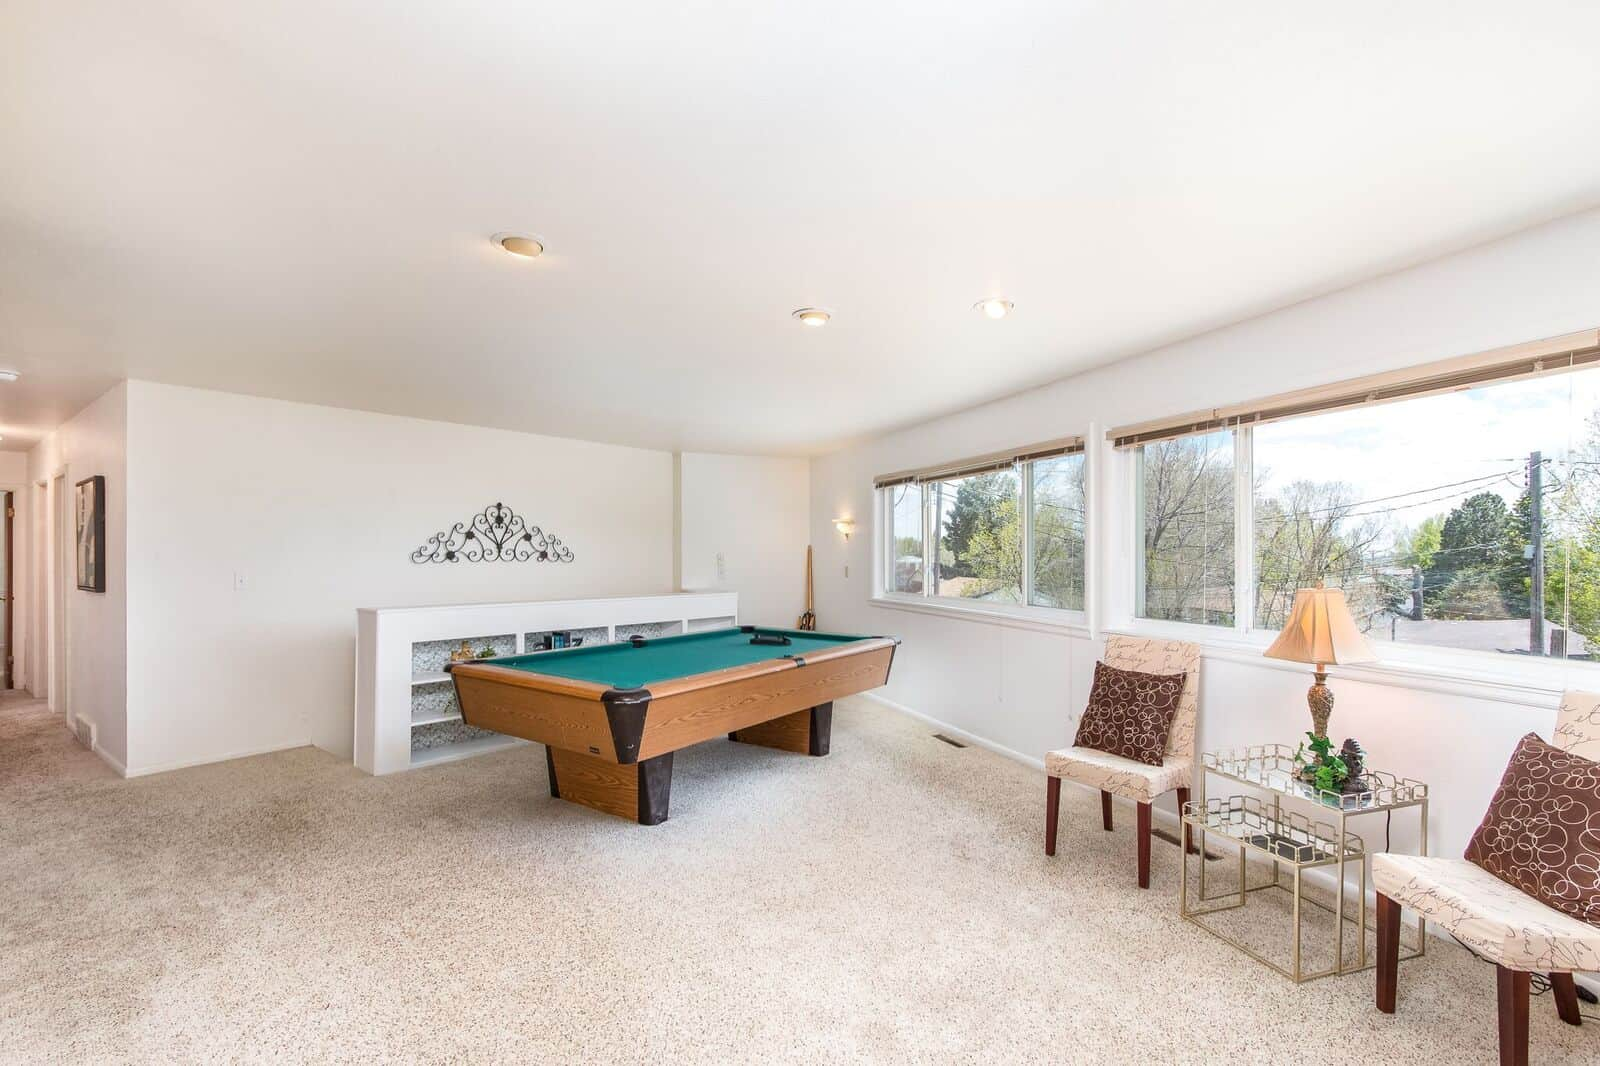 1221 Mount View LN, Colorado Springs, CO 80907 - Make Your Best Move